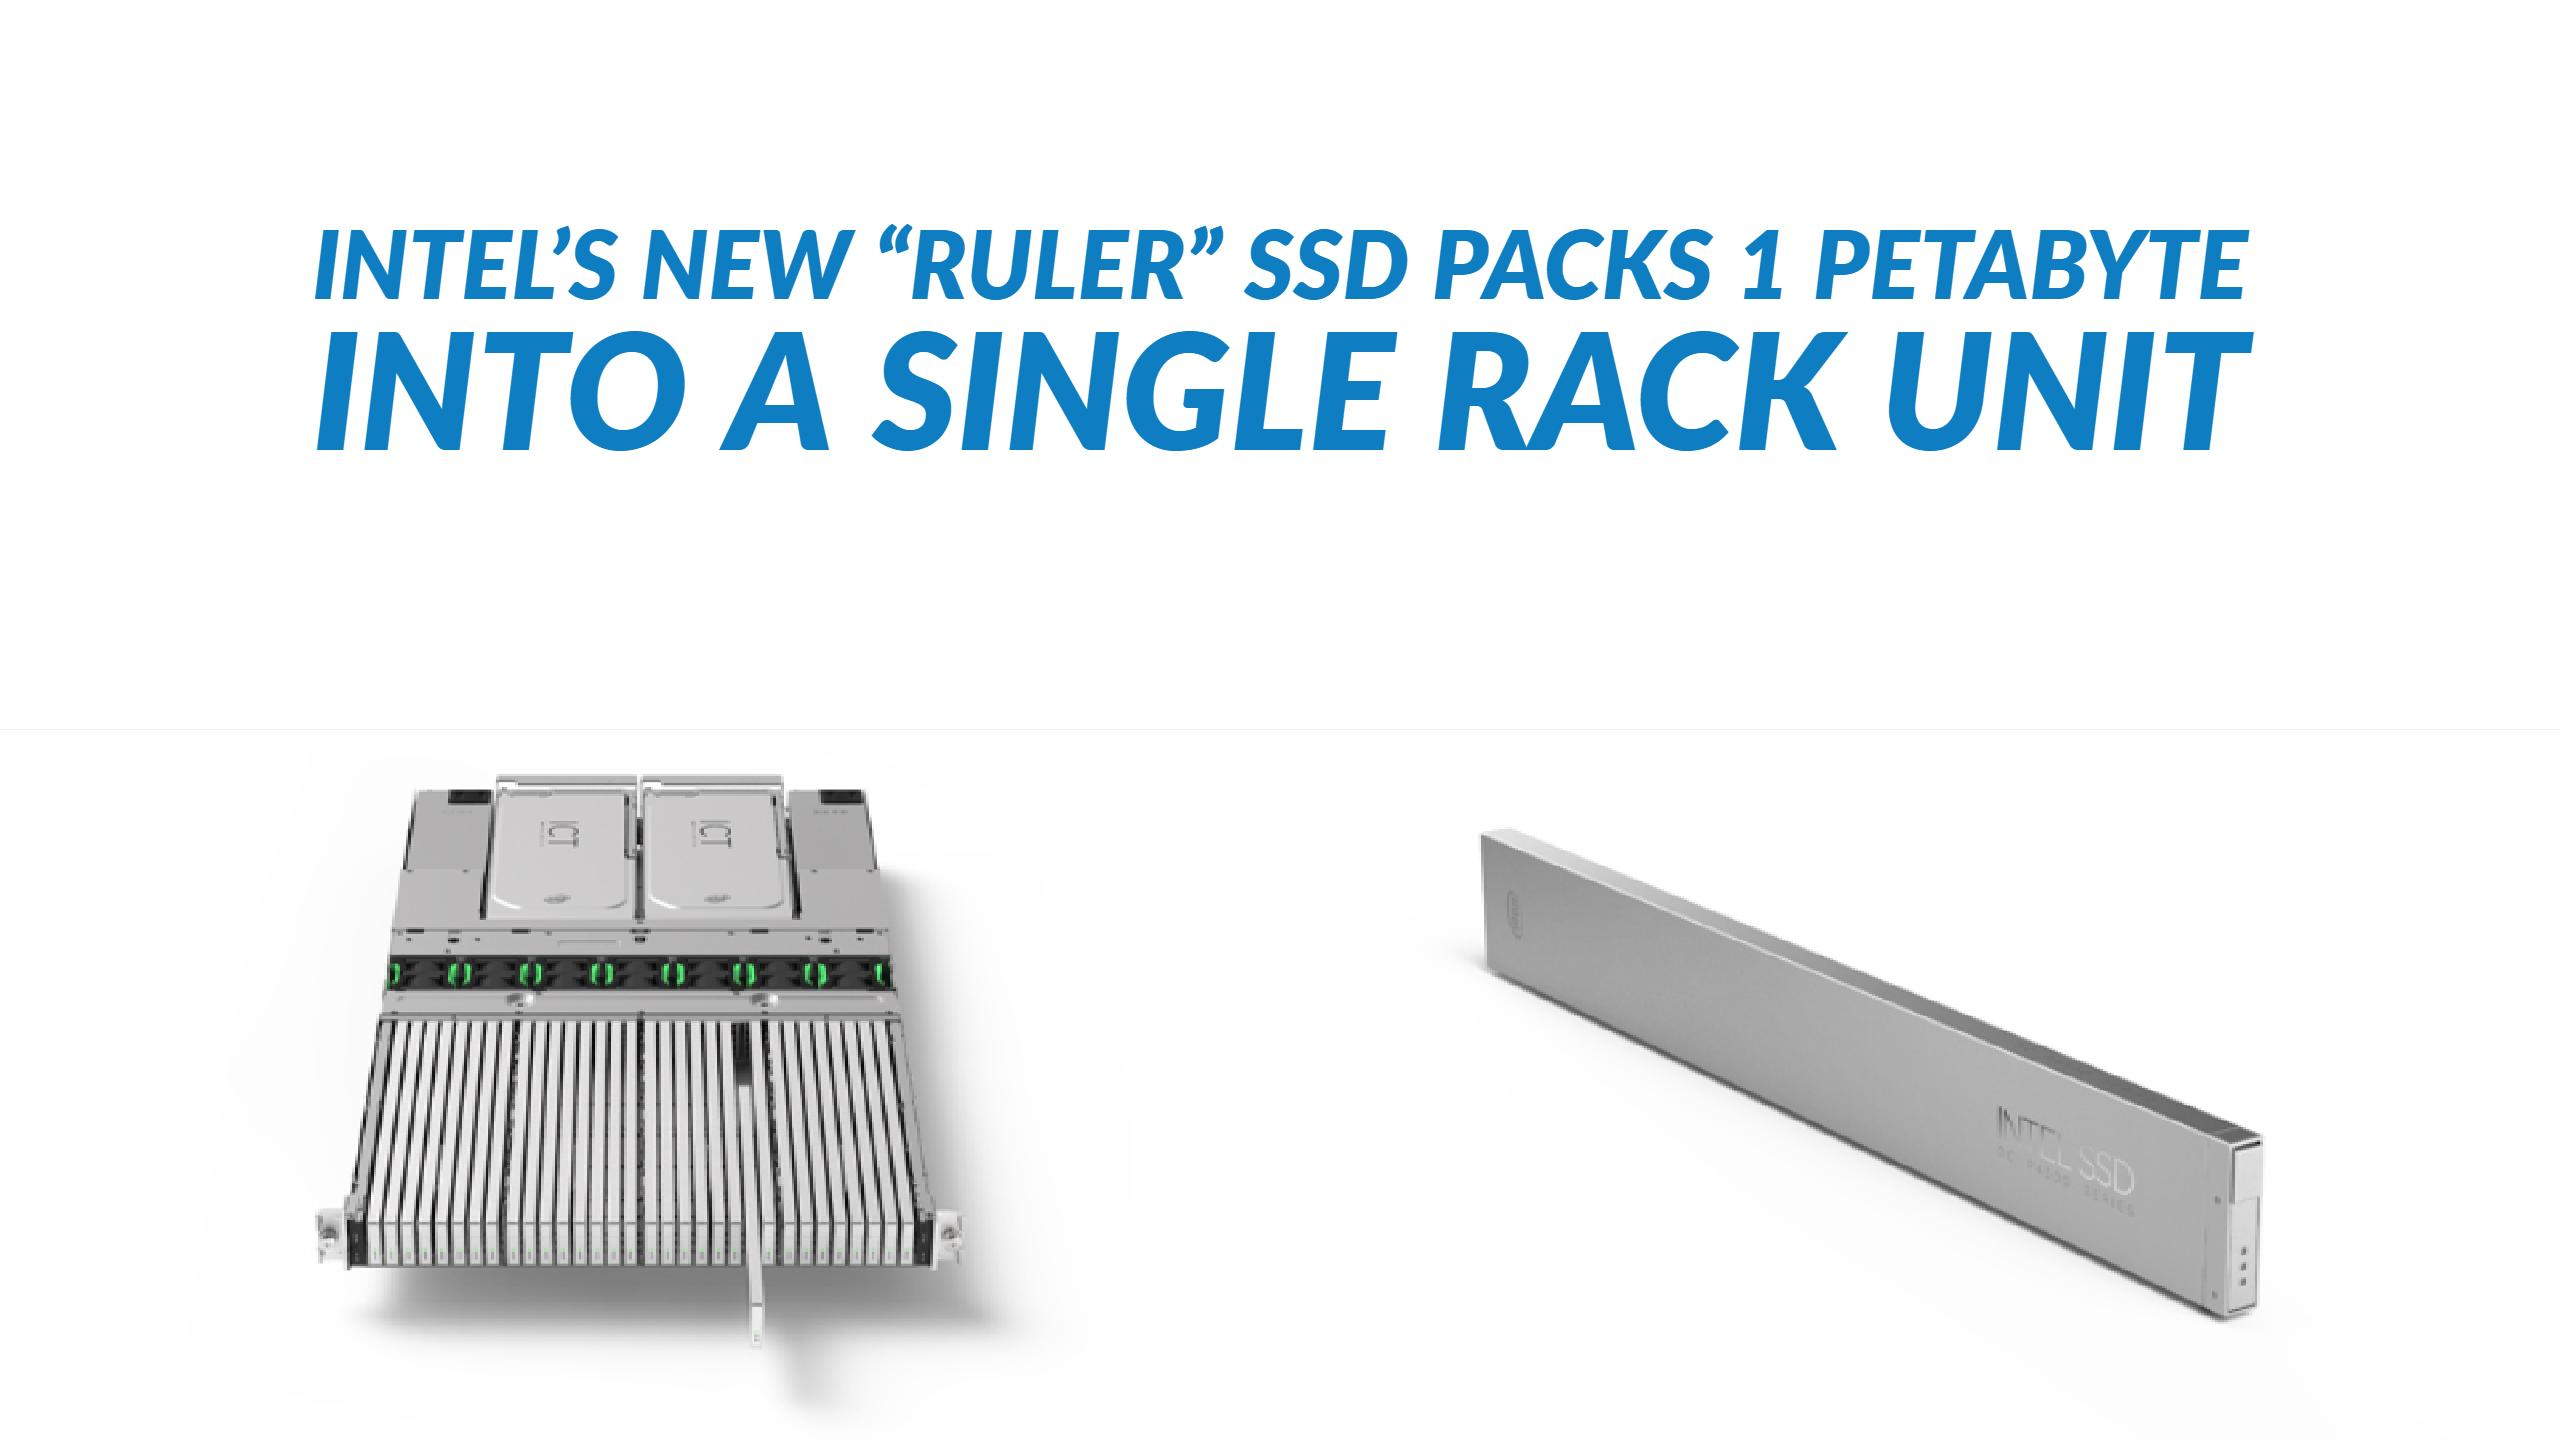 Intel Packs 1 Petabyte Into 1U With New Ruler SSD